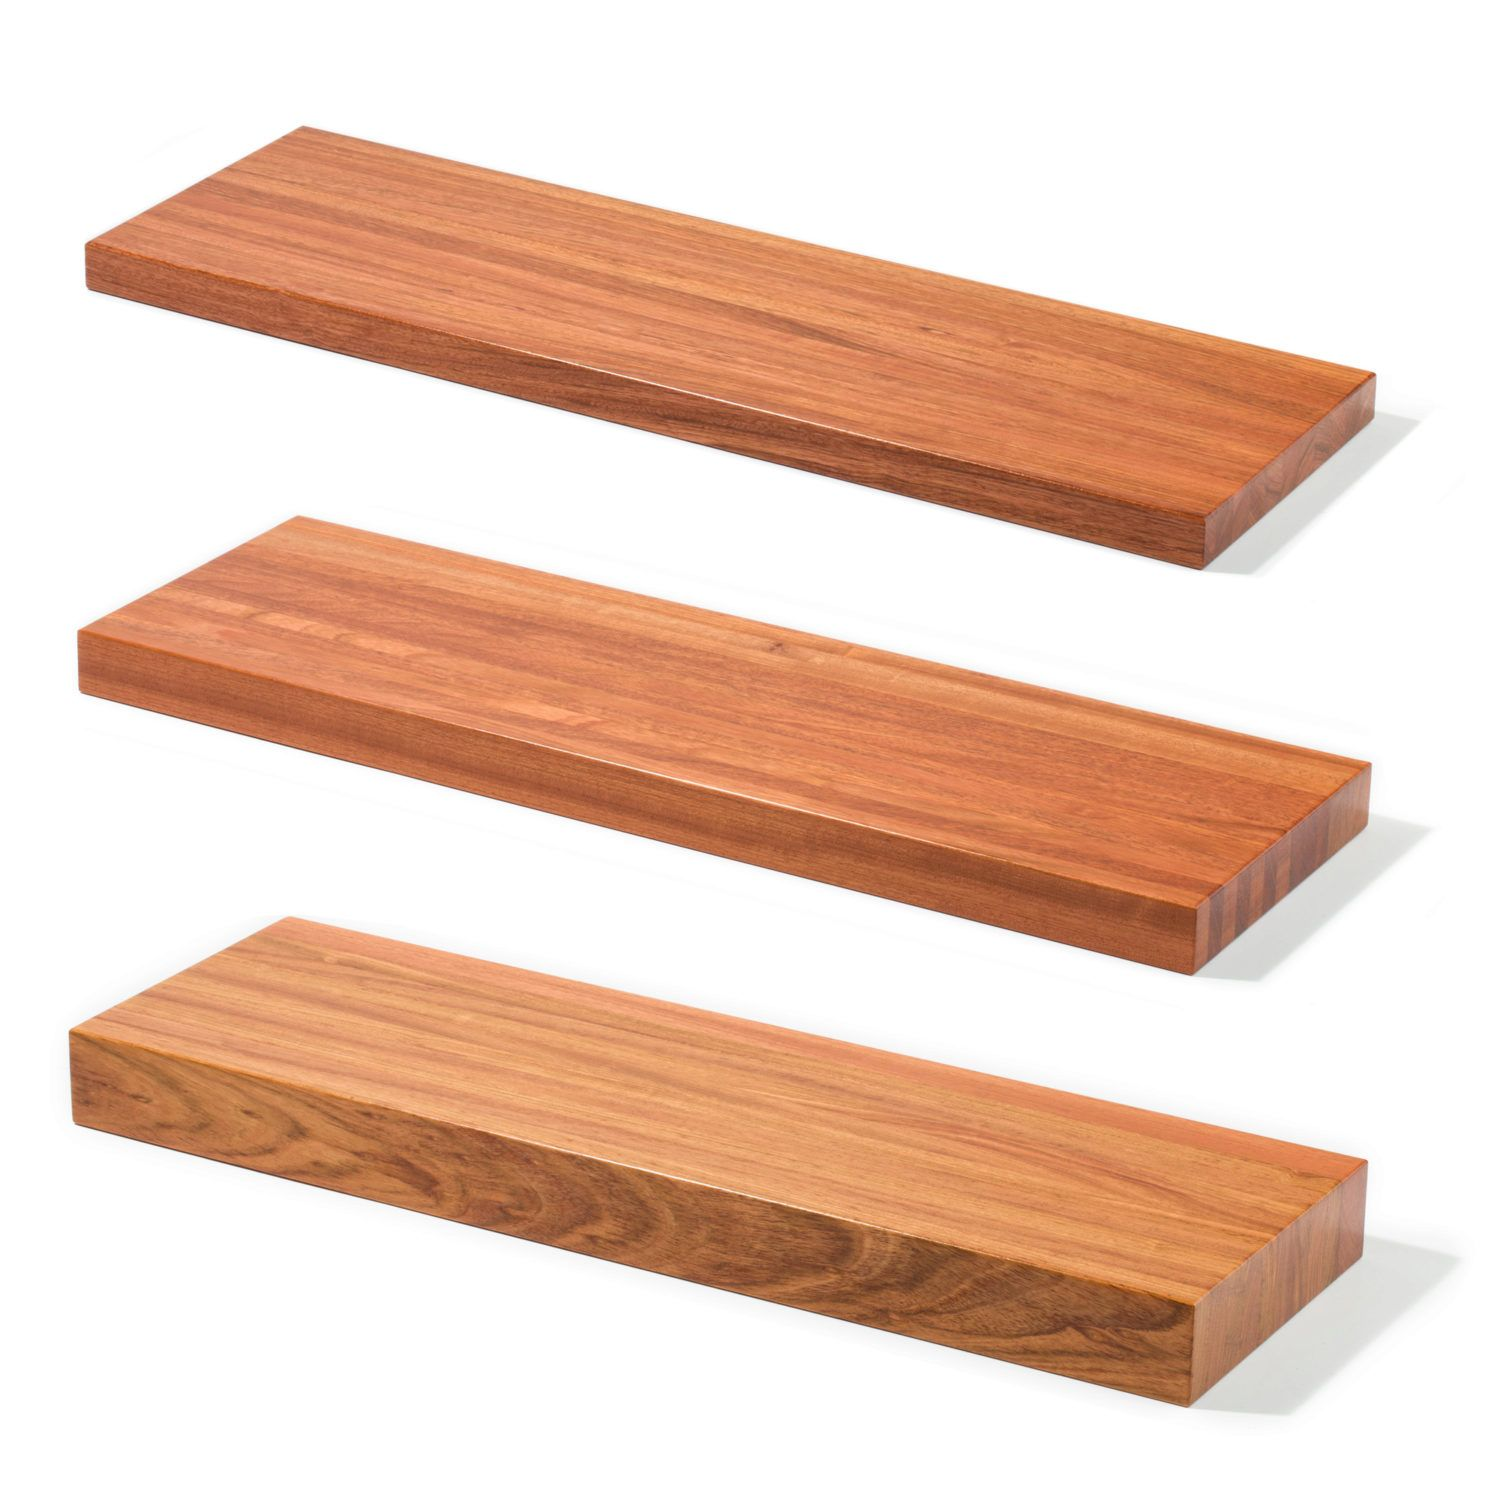 Thick Stair Treads Category Wood Stair Treads Wood | Wood Stair Tread Manufacturers